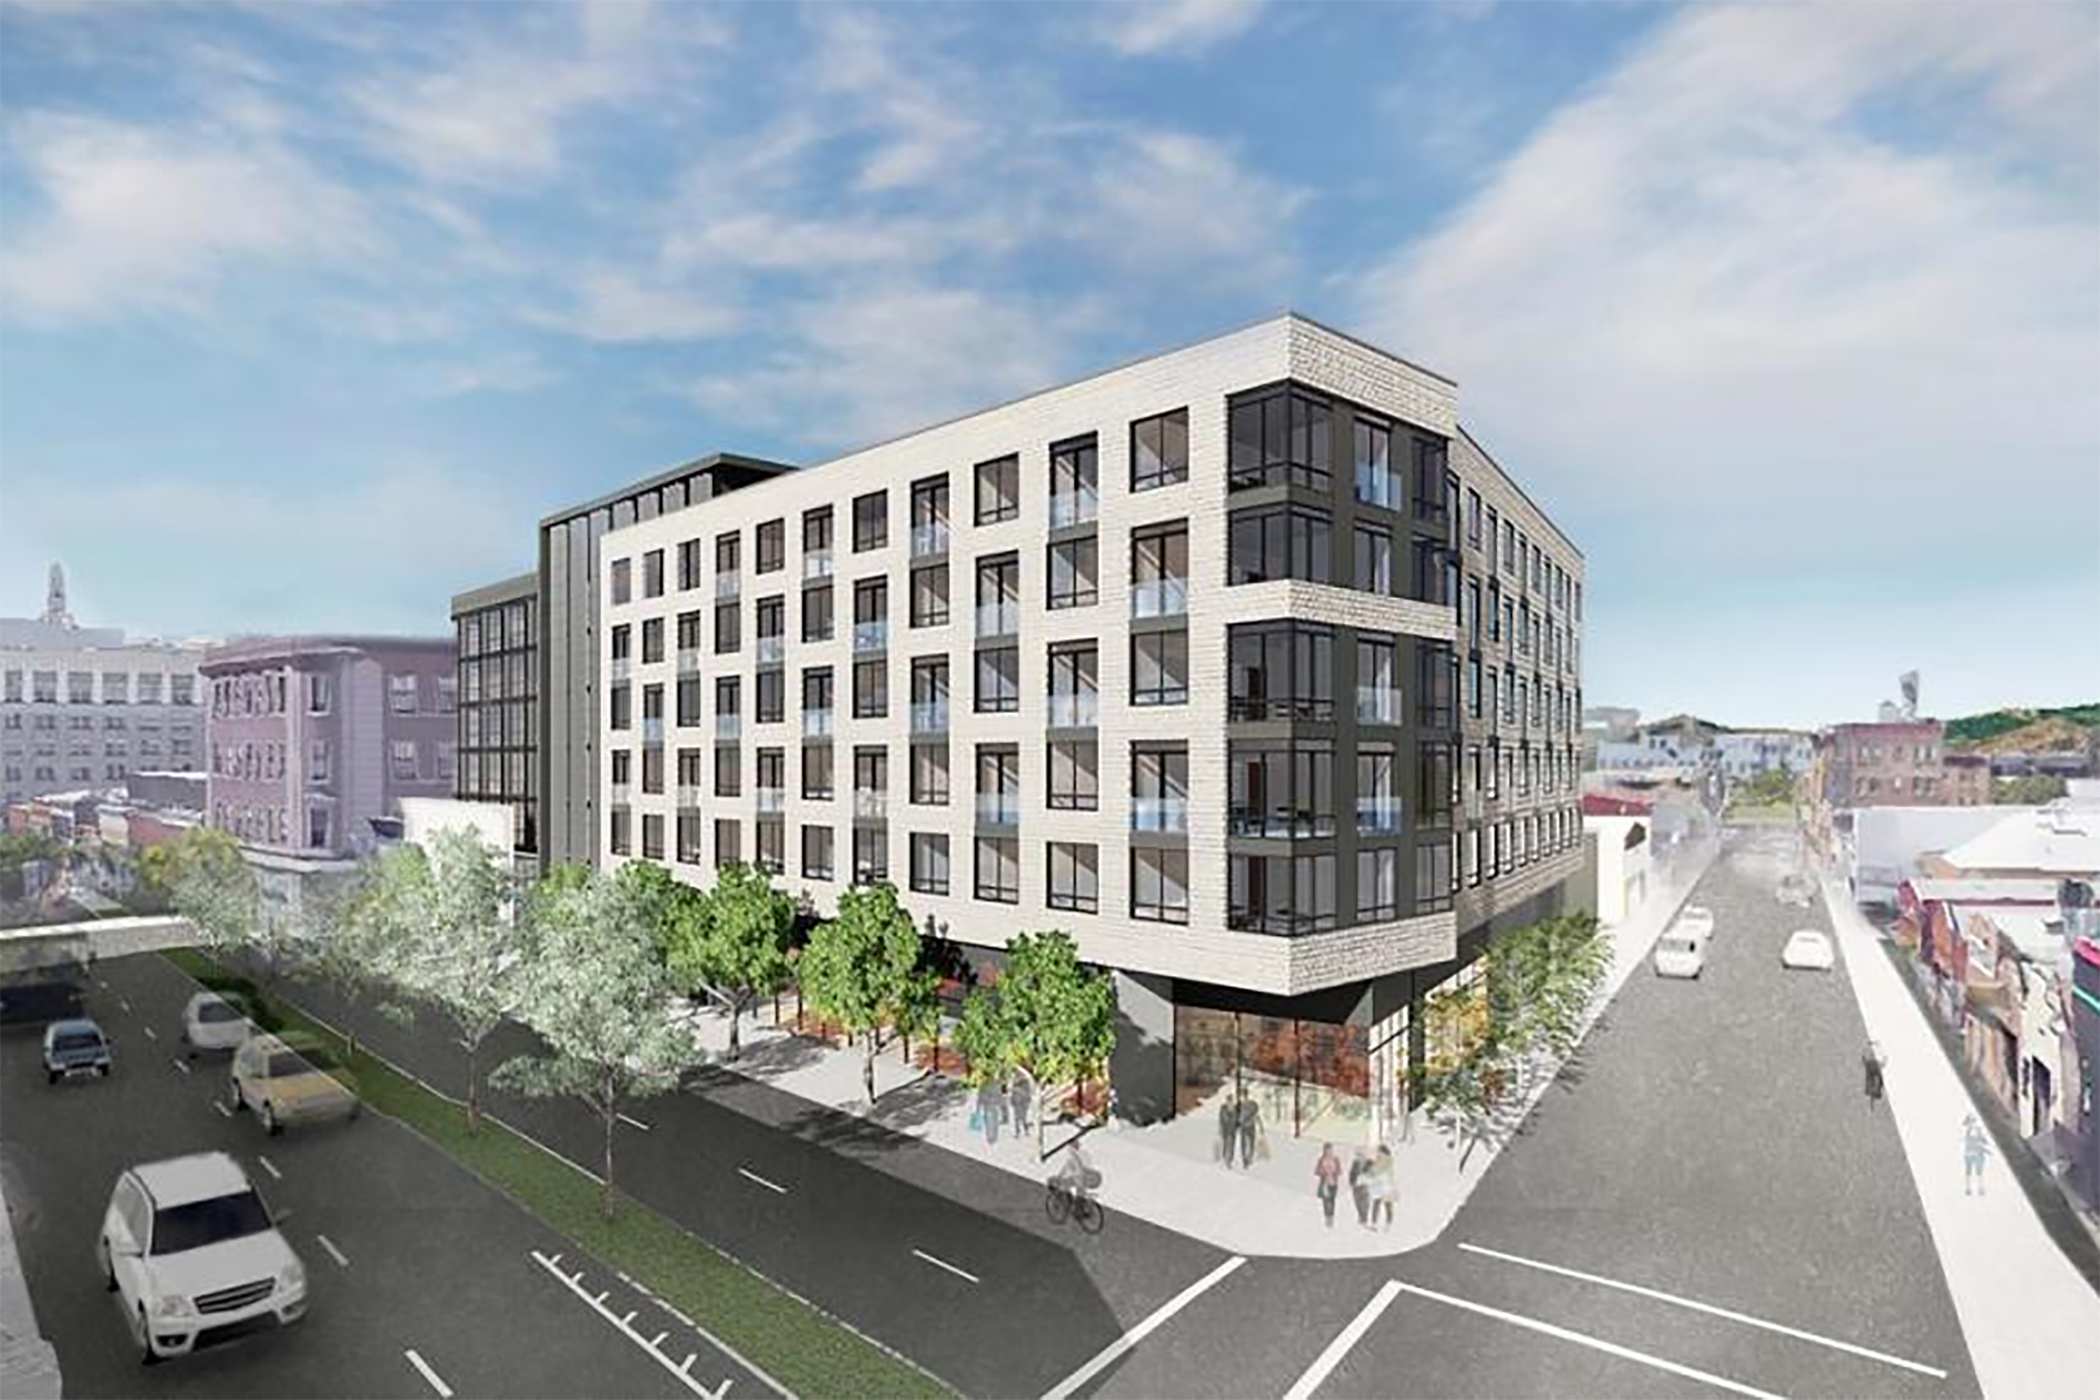 The proposed West Elm Hotel in Oakland, California, is now on track to be replaced with another boutique operator. (Signature Development Group)